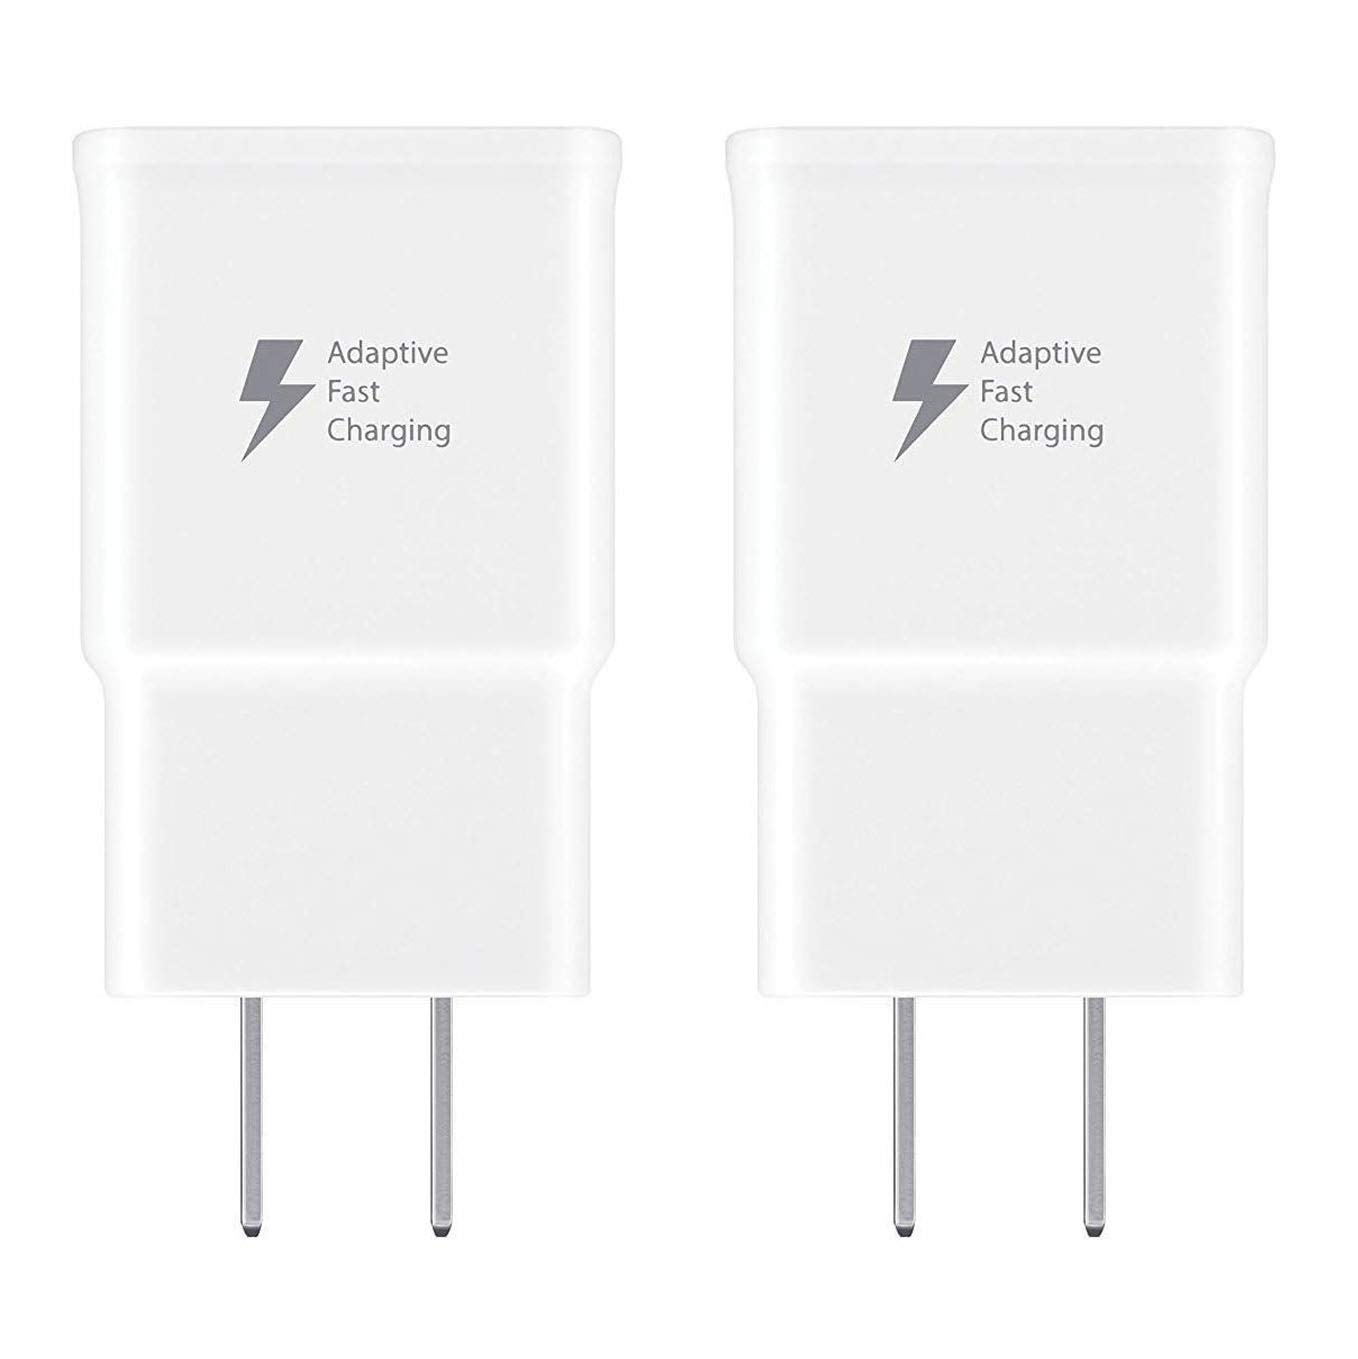 Spater Adaptive Fast Charging Wall Charger Compatible with Samsung Galaxy Note9 // Note8 // Note5 // S10 // S9 // S8 // S8 // S7 // S6 Plus White Galaxy S8 Active and More 2 Pack